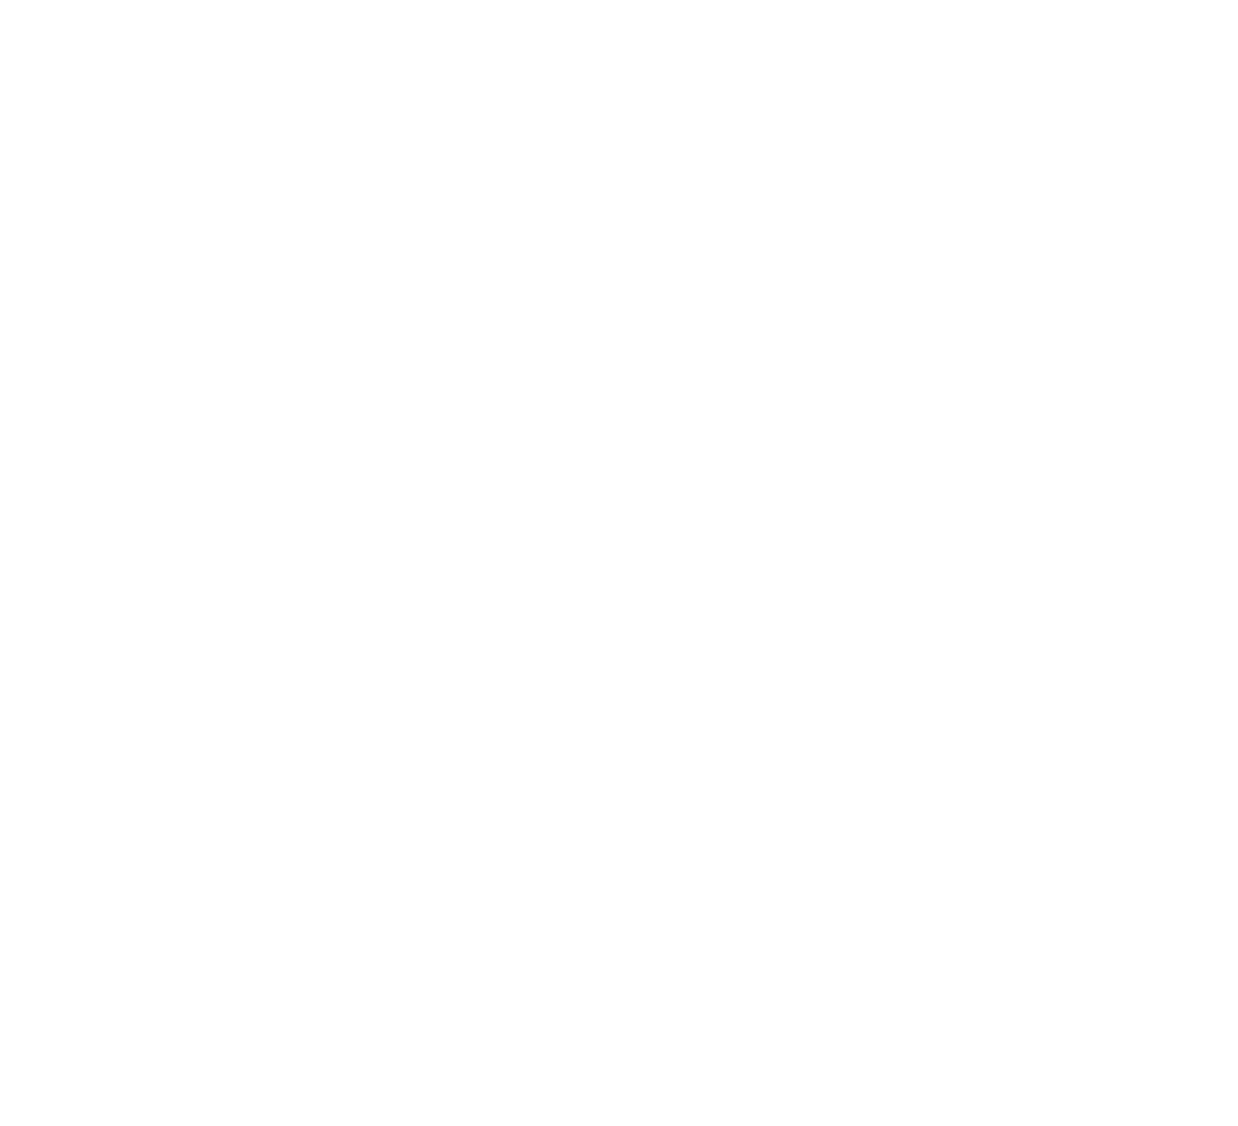 Welford Chase